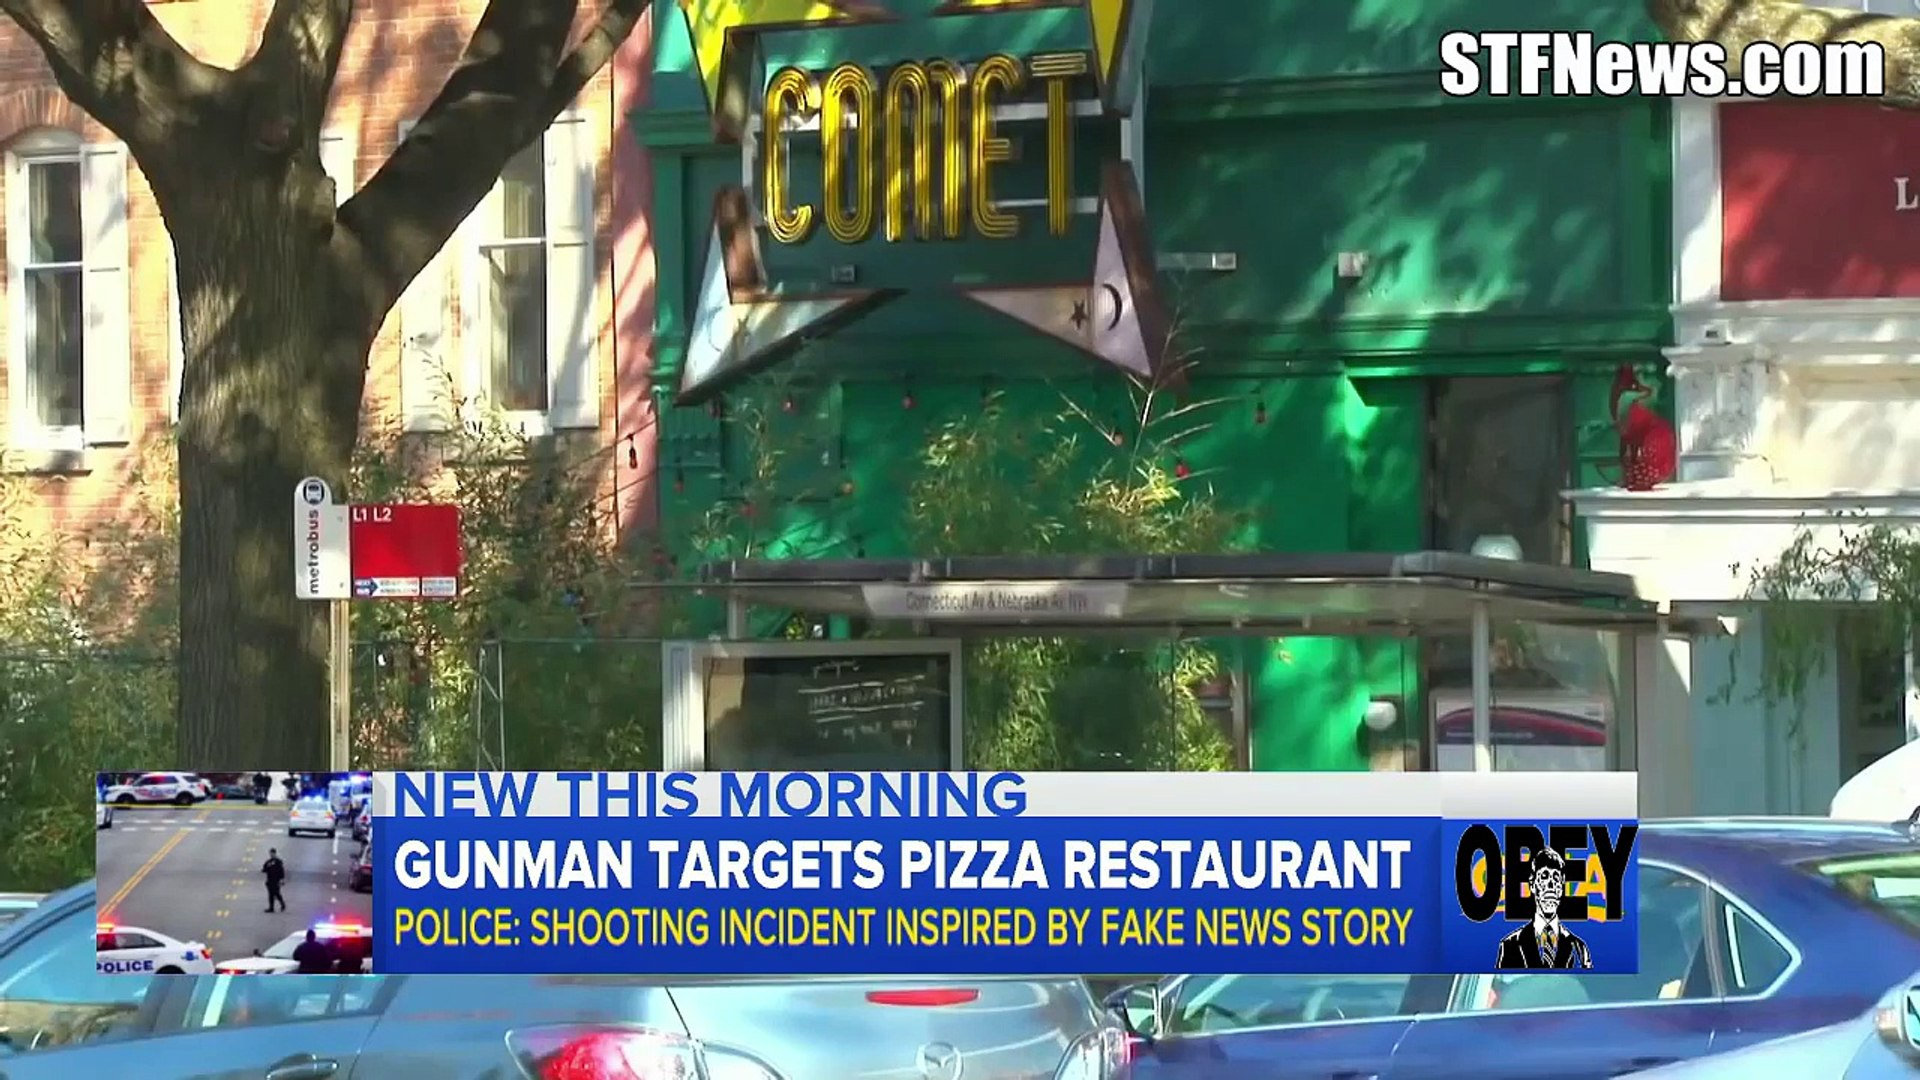 BOGUS #PIZZAGATE CONSPIRACY SHOWS HOW DANGEROUS FAKE NEWS CAN BE